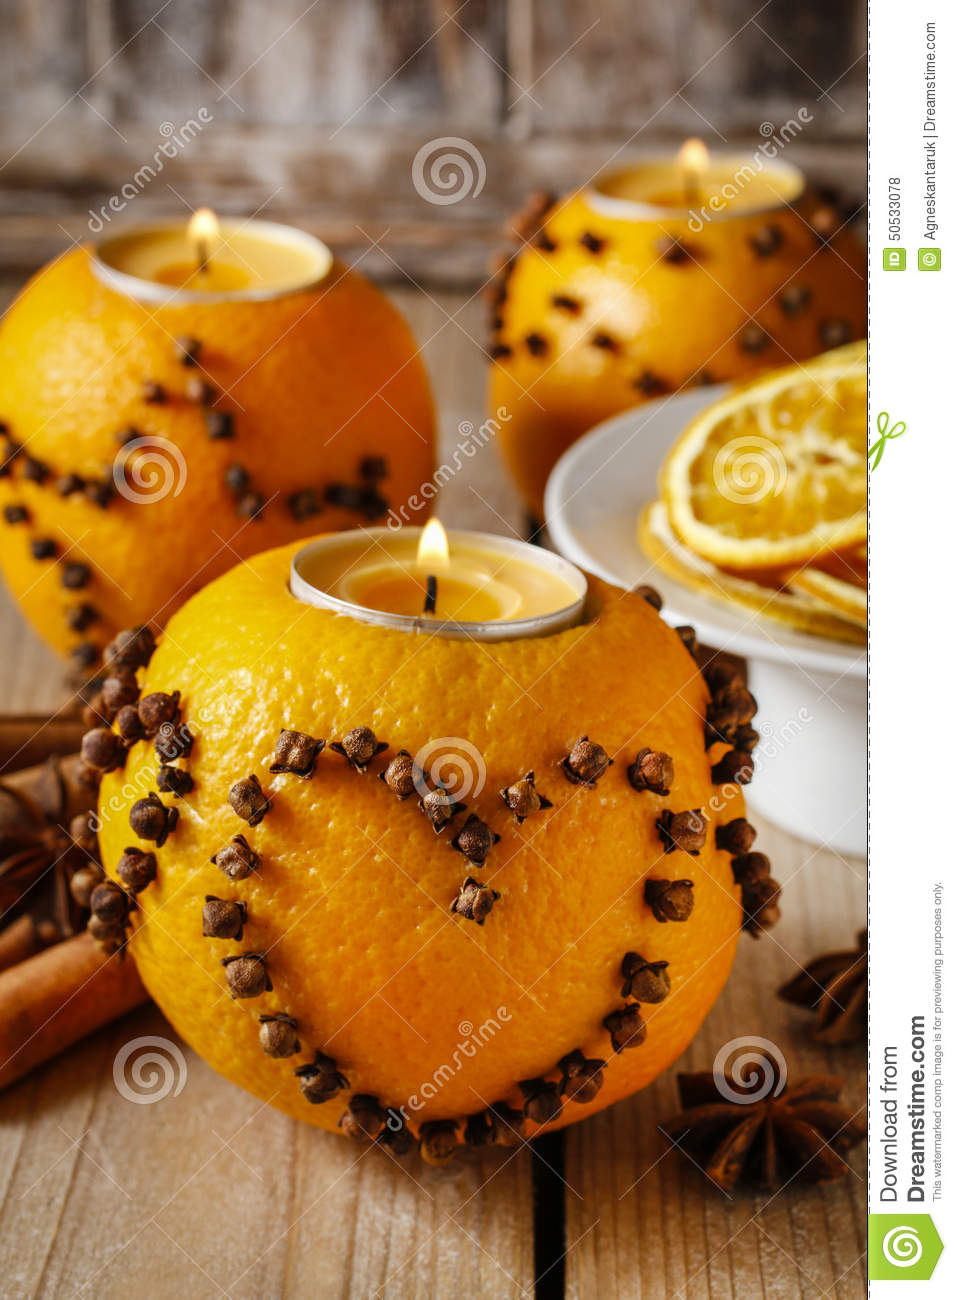 Orange Pomander Ball With Candle Decorated With Cloves In